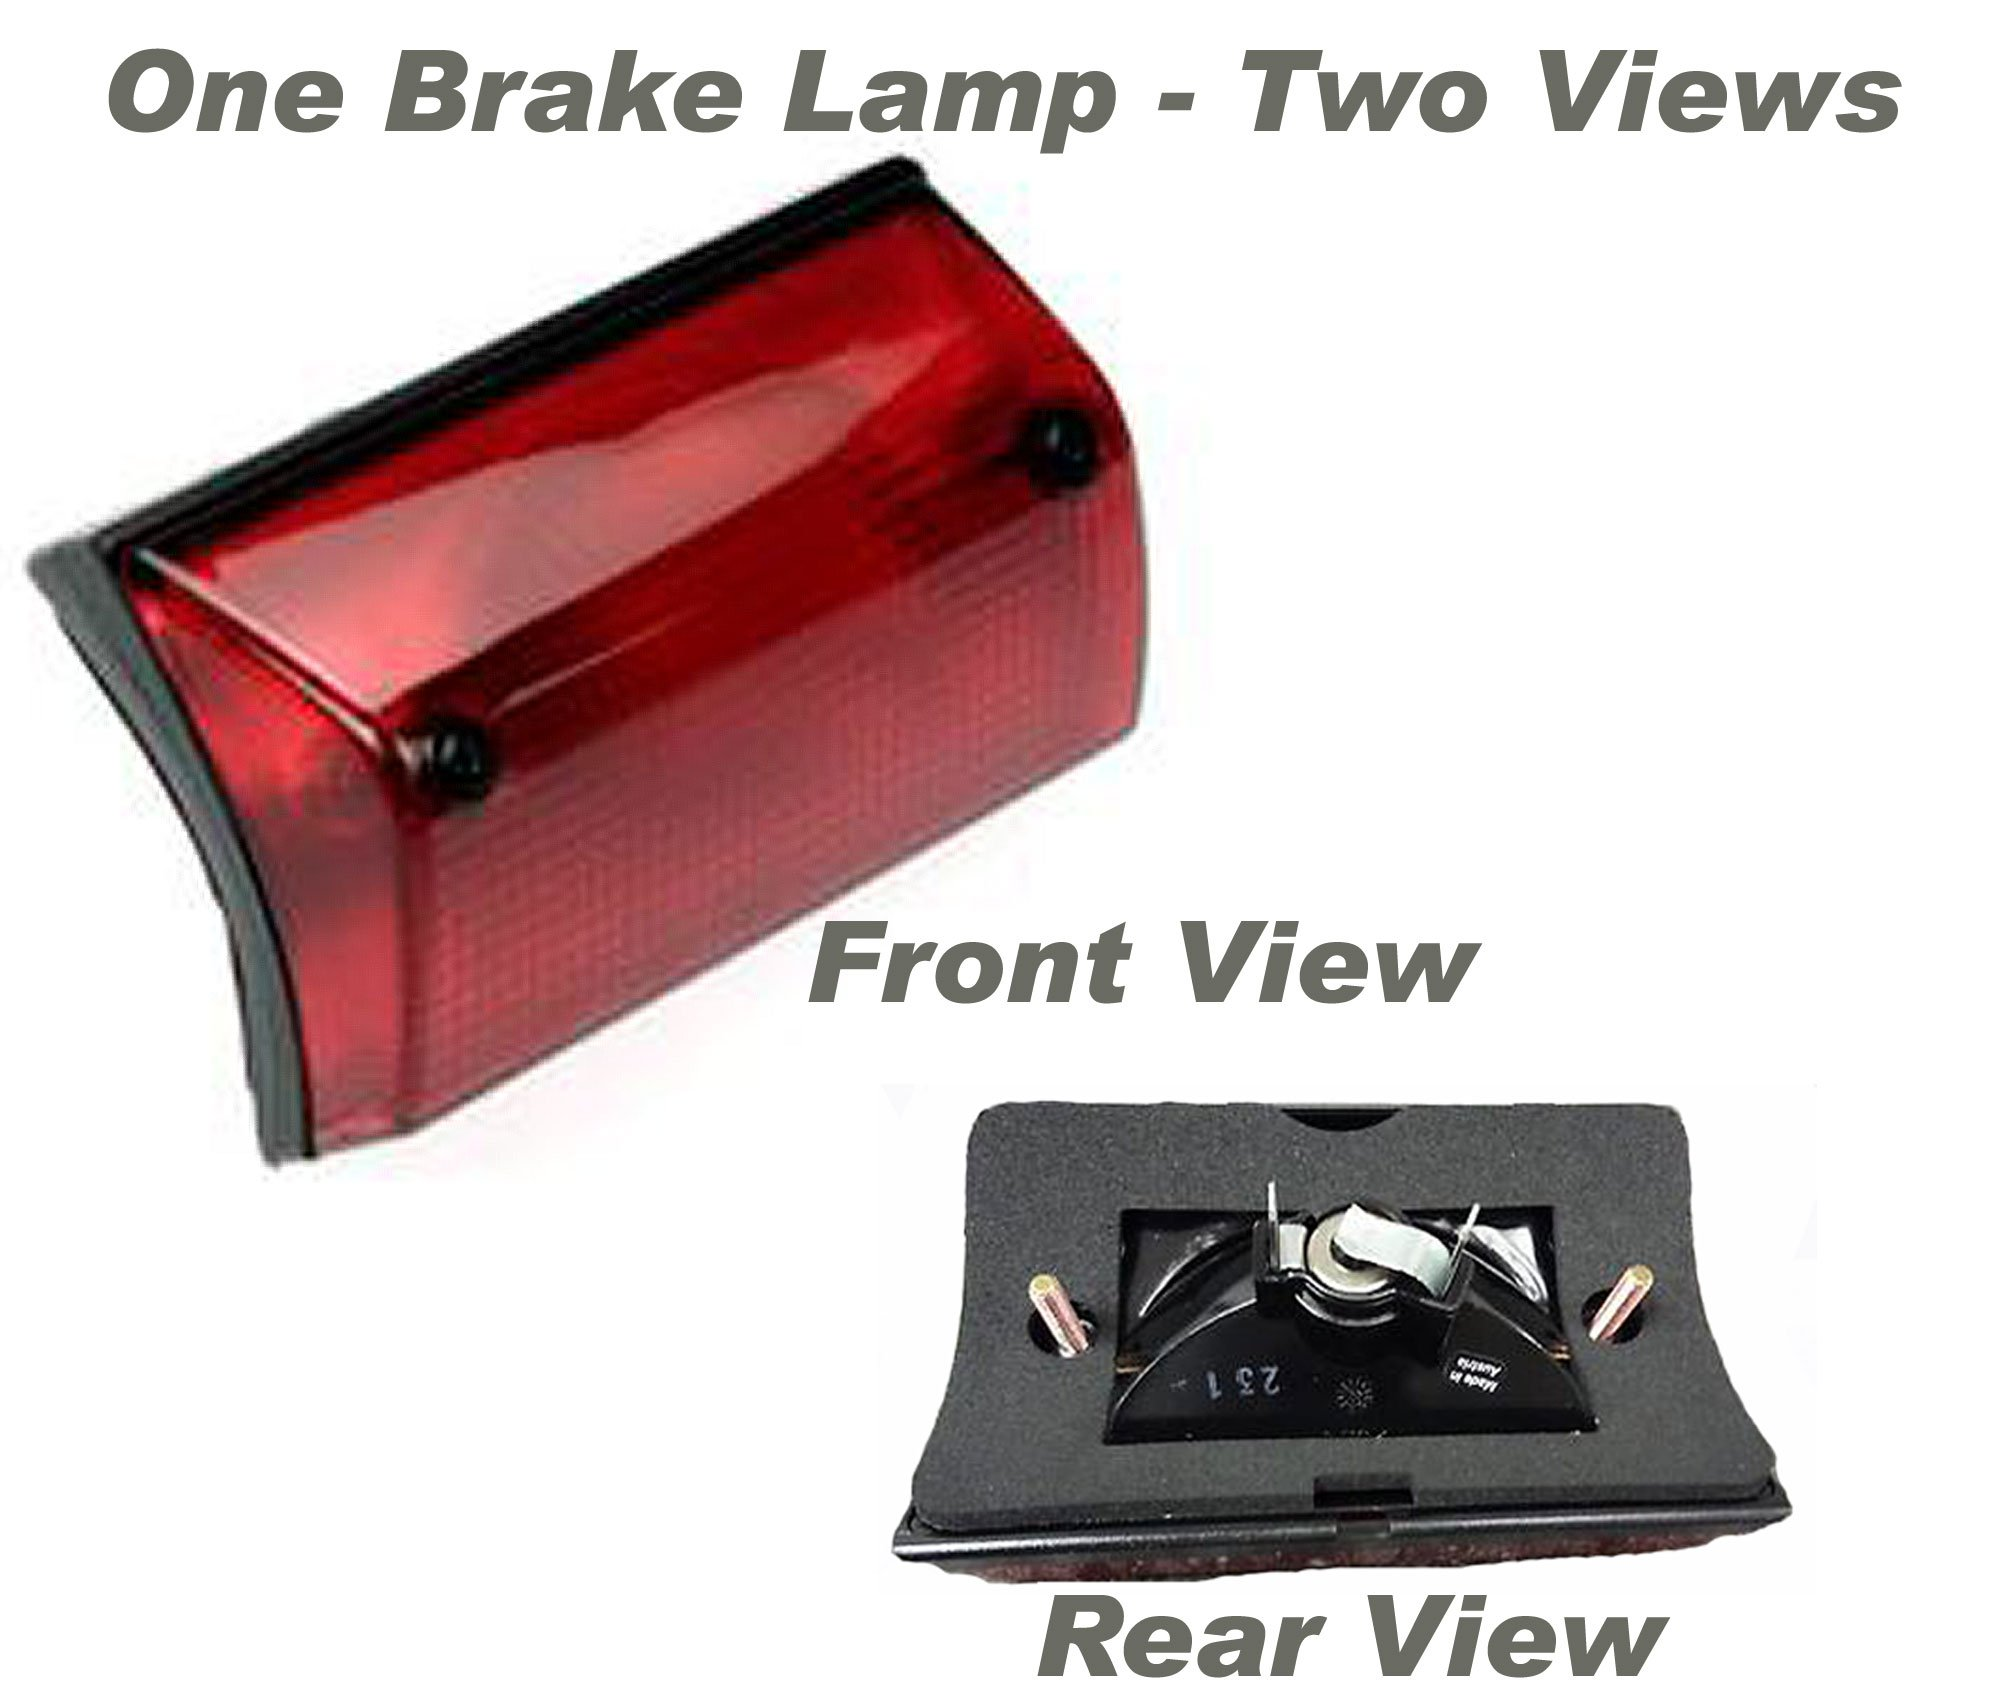 Replaces 5124473AA, 5124473AB APDTY 034345 Third 3rd Center Mount Brake Light//Lamp Assembly Fits 2003-2005 Dodge Sprinter 2500 and 3500 Except High Roof Models